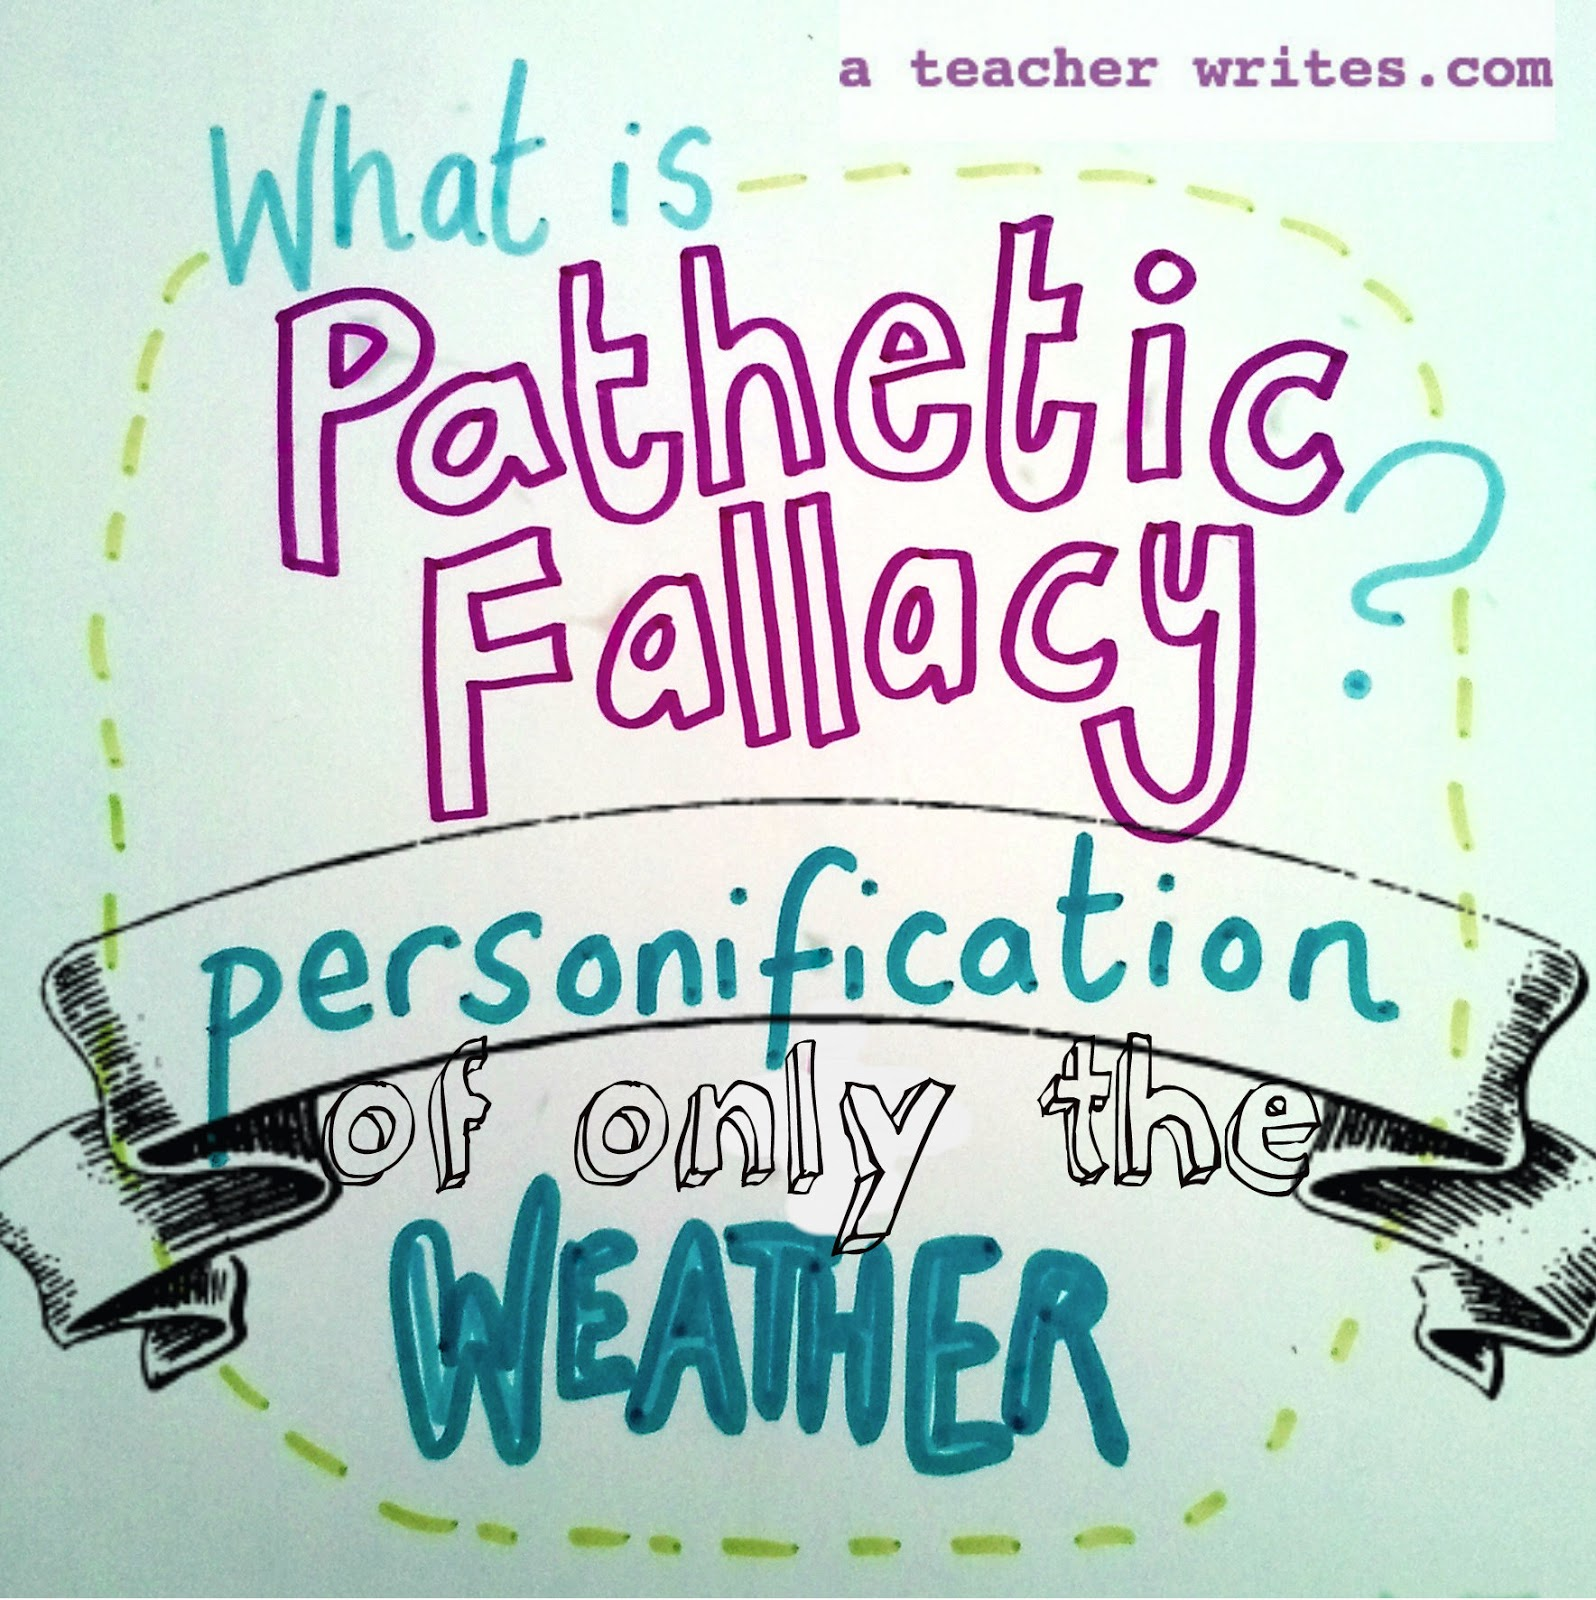 curvelearn com what is pathetic fallacy simple explanation for get examples of pathetic fallacy